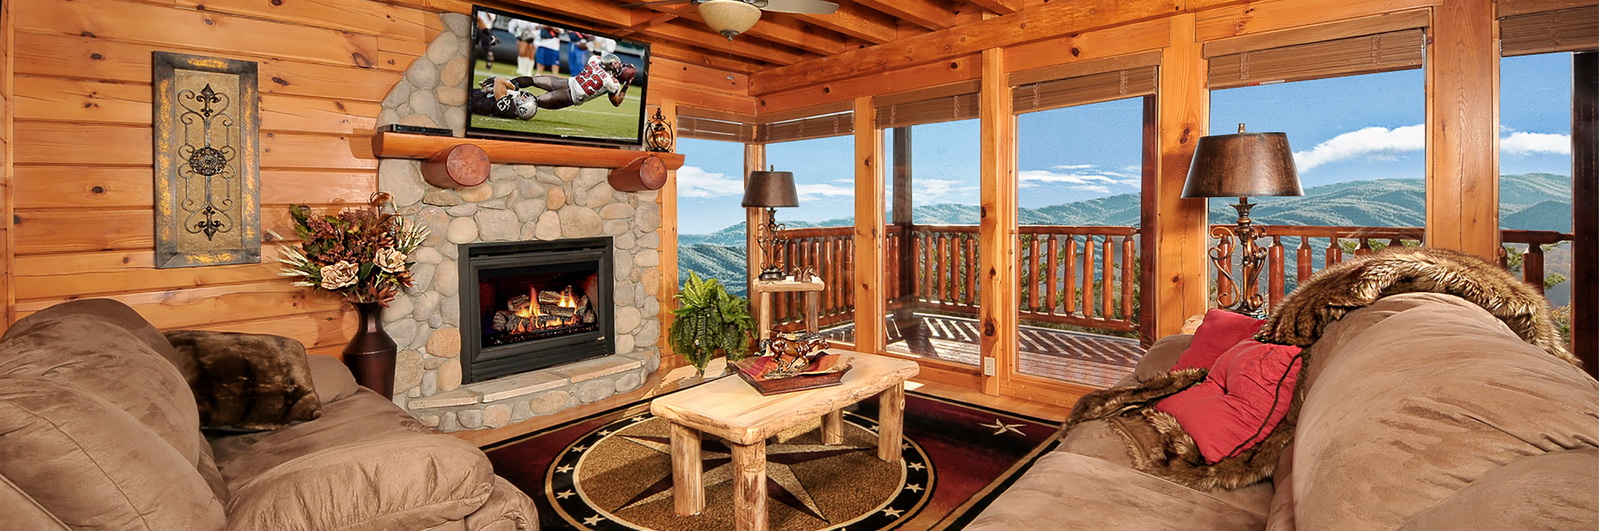 between log bathrooms located luxury conveniently usa gatlinburg the pigeon beds rental pin com and is from in cabin fantasy forest has king for sevierville vrbo tn size a sale full vacation cabins forge